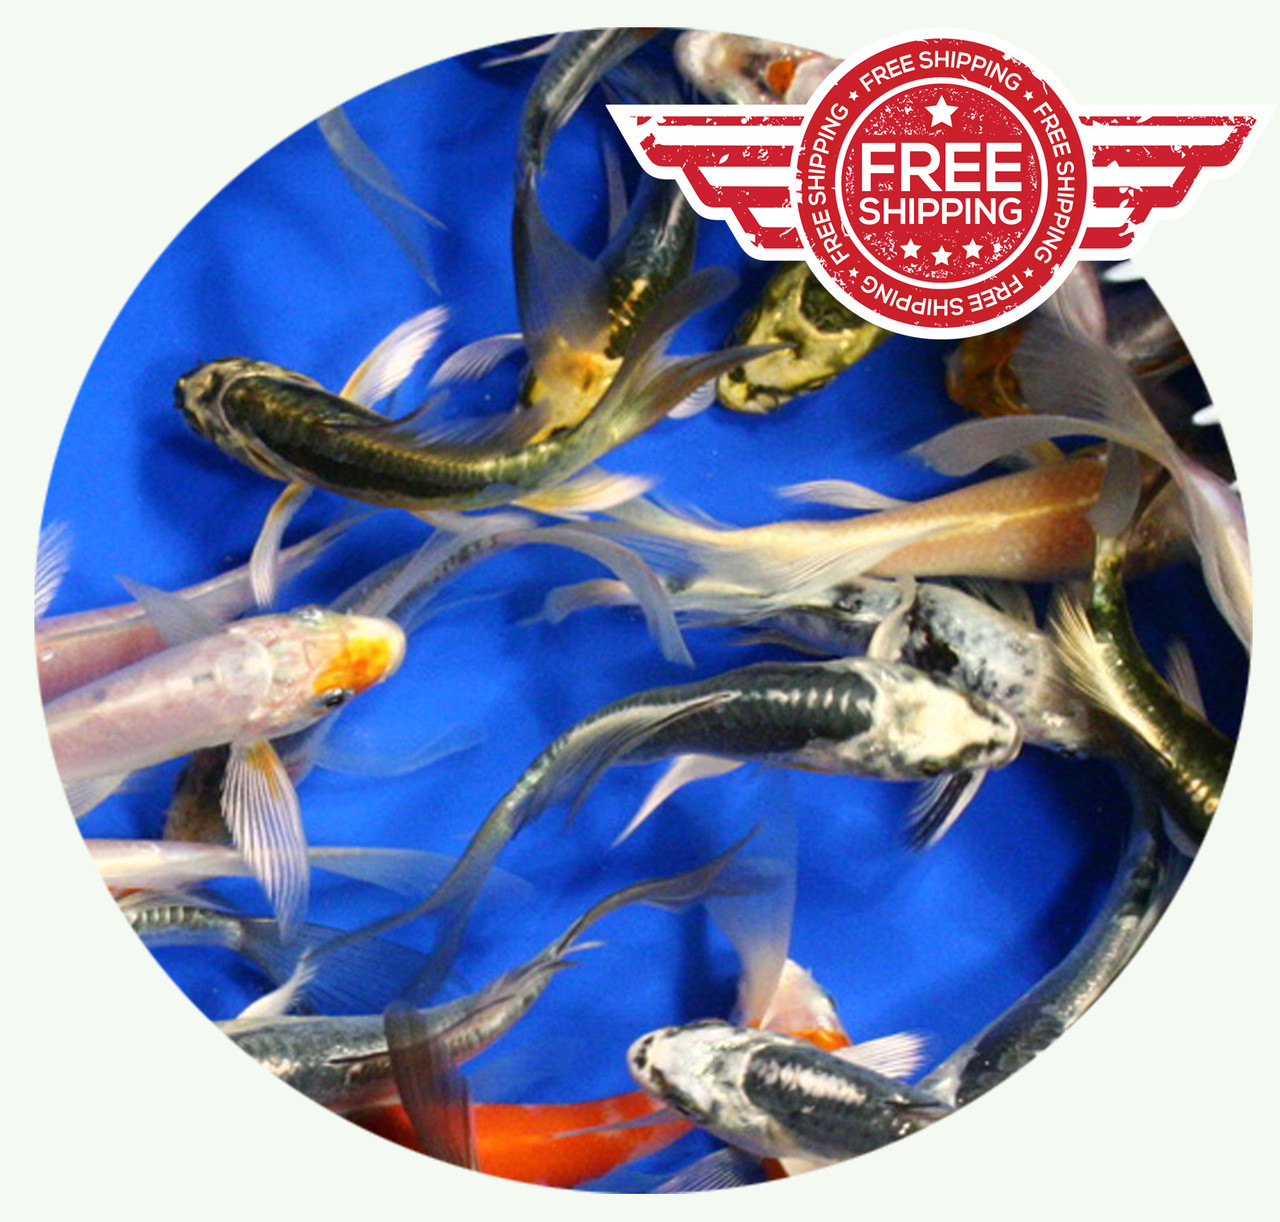 LIVE Koi Fish For Sale-starting at 3